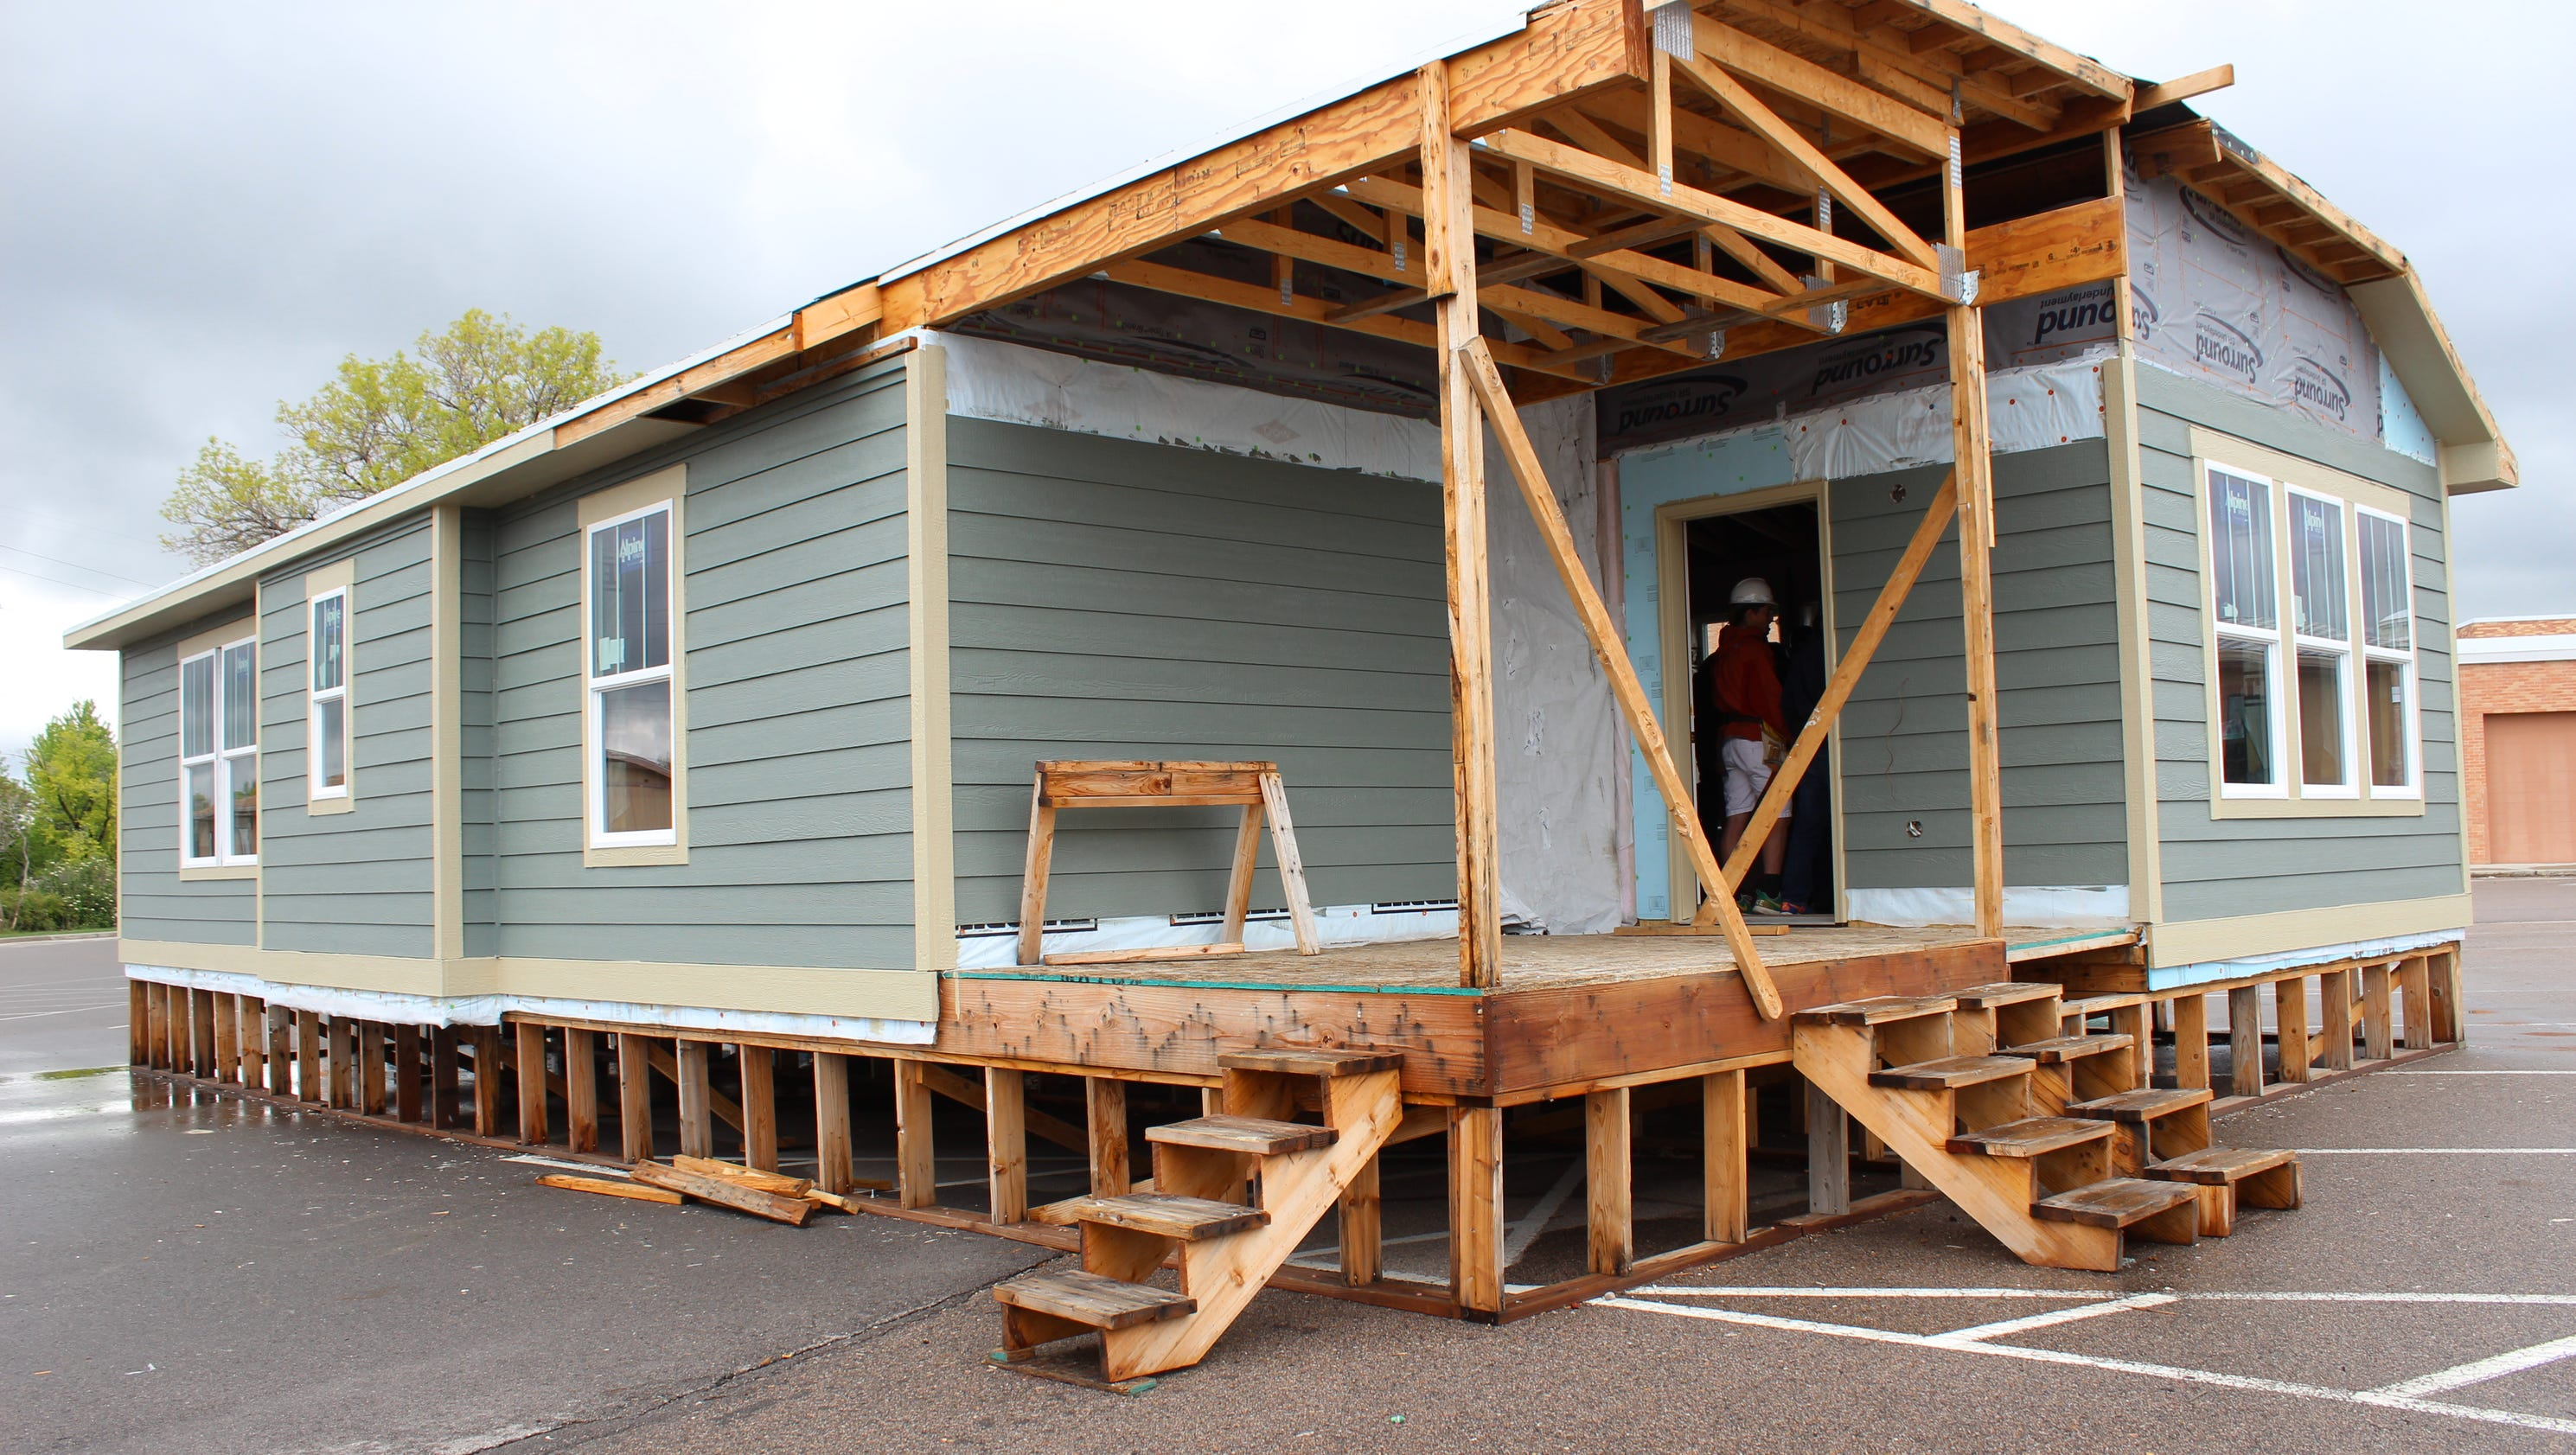 Fort collins church offers land for student built habitat - House habitat ...